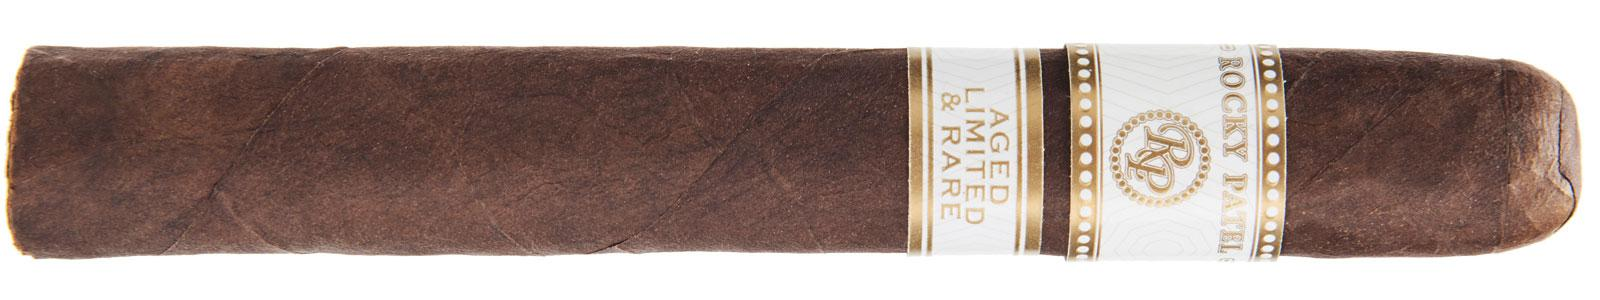 Rocky Patel ALR will be launching alongside Tavicusa and Liberation By Hamlet this week.